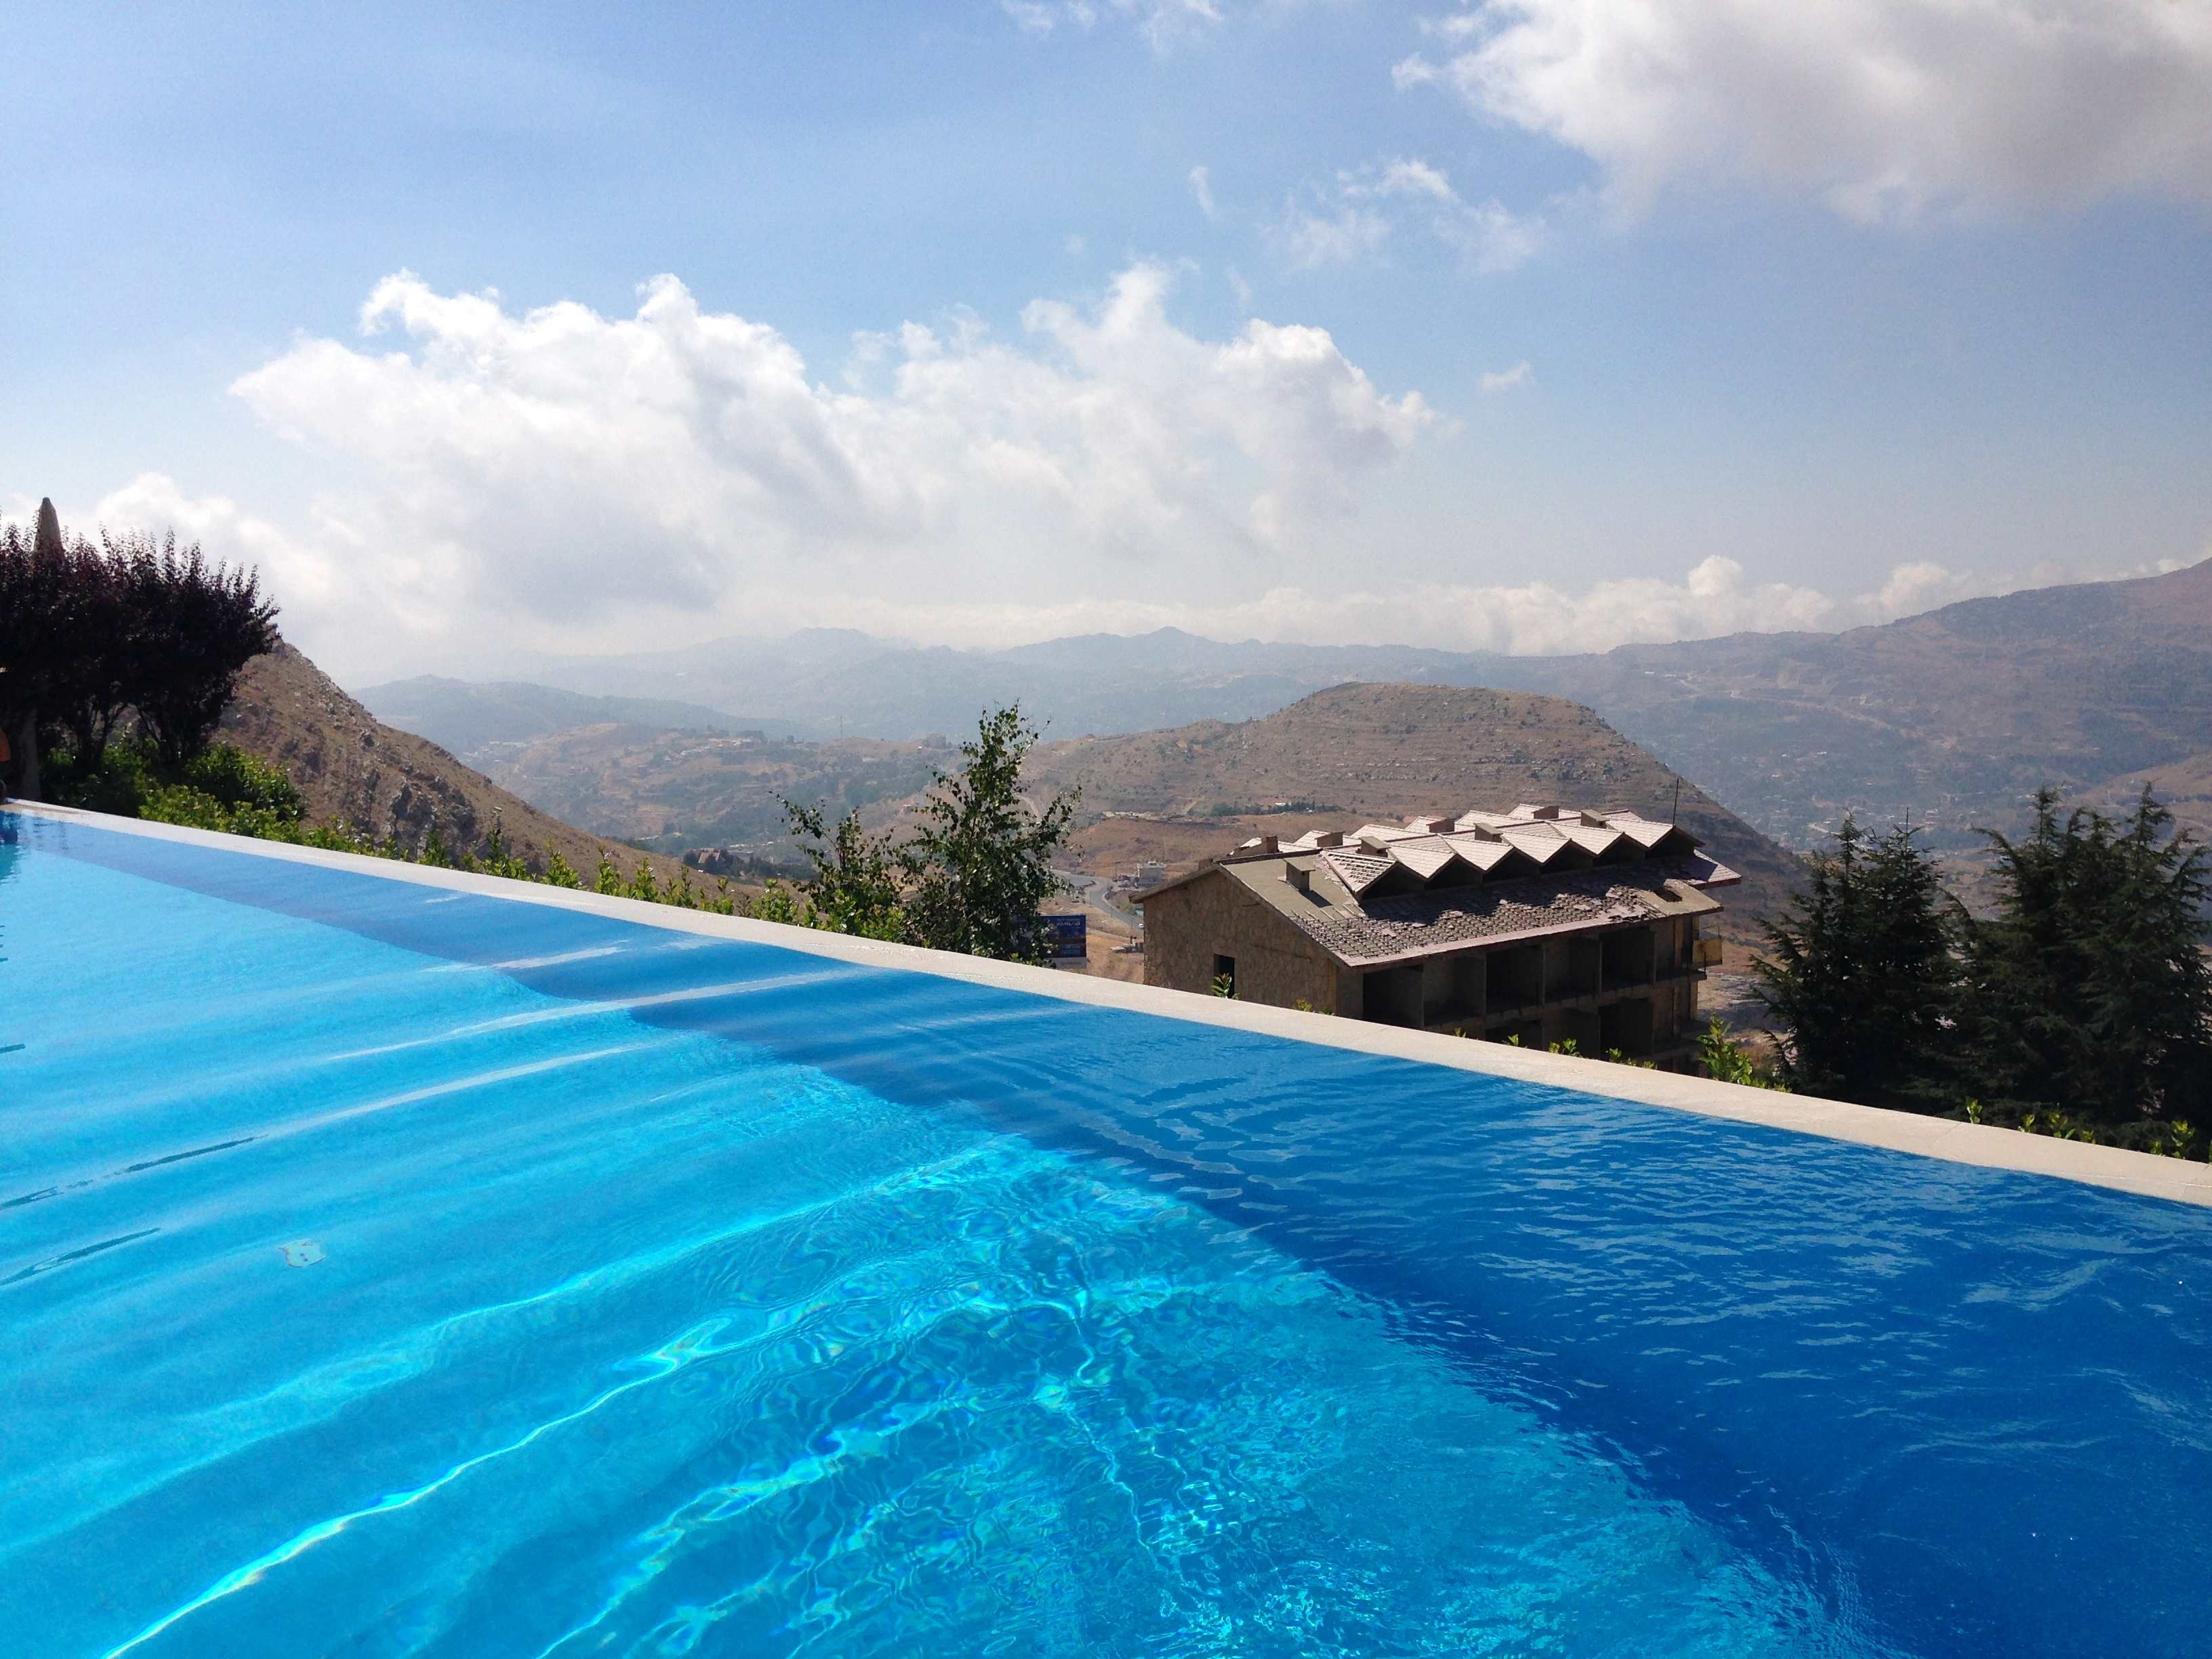 Rent Villa With Pool In Lebanon